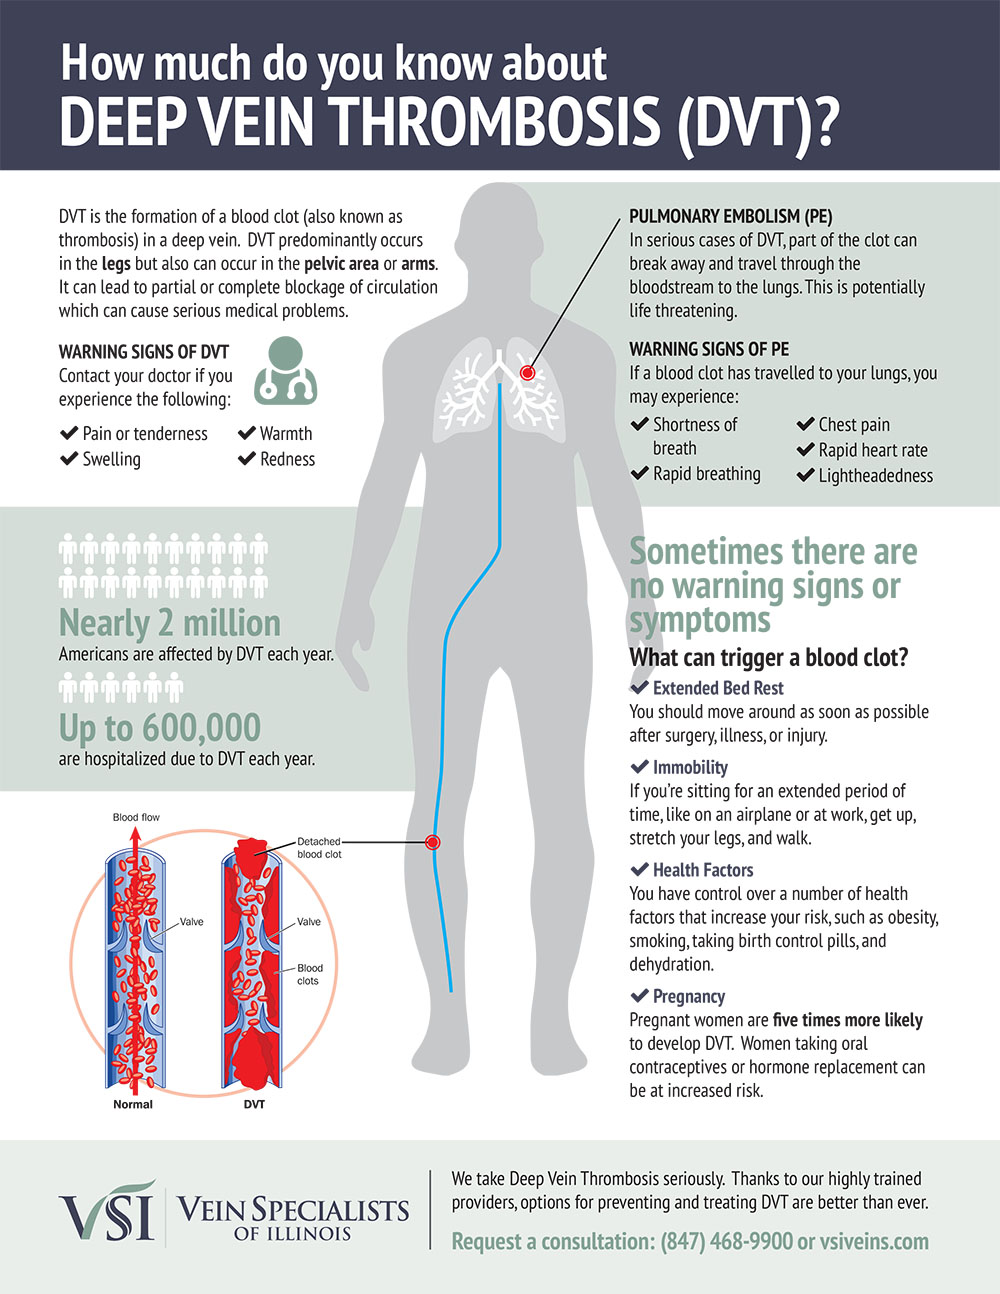 How much you know about Deep Vein Thrombosis